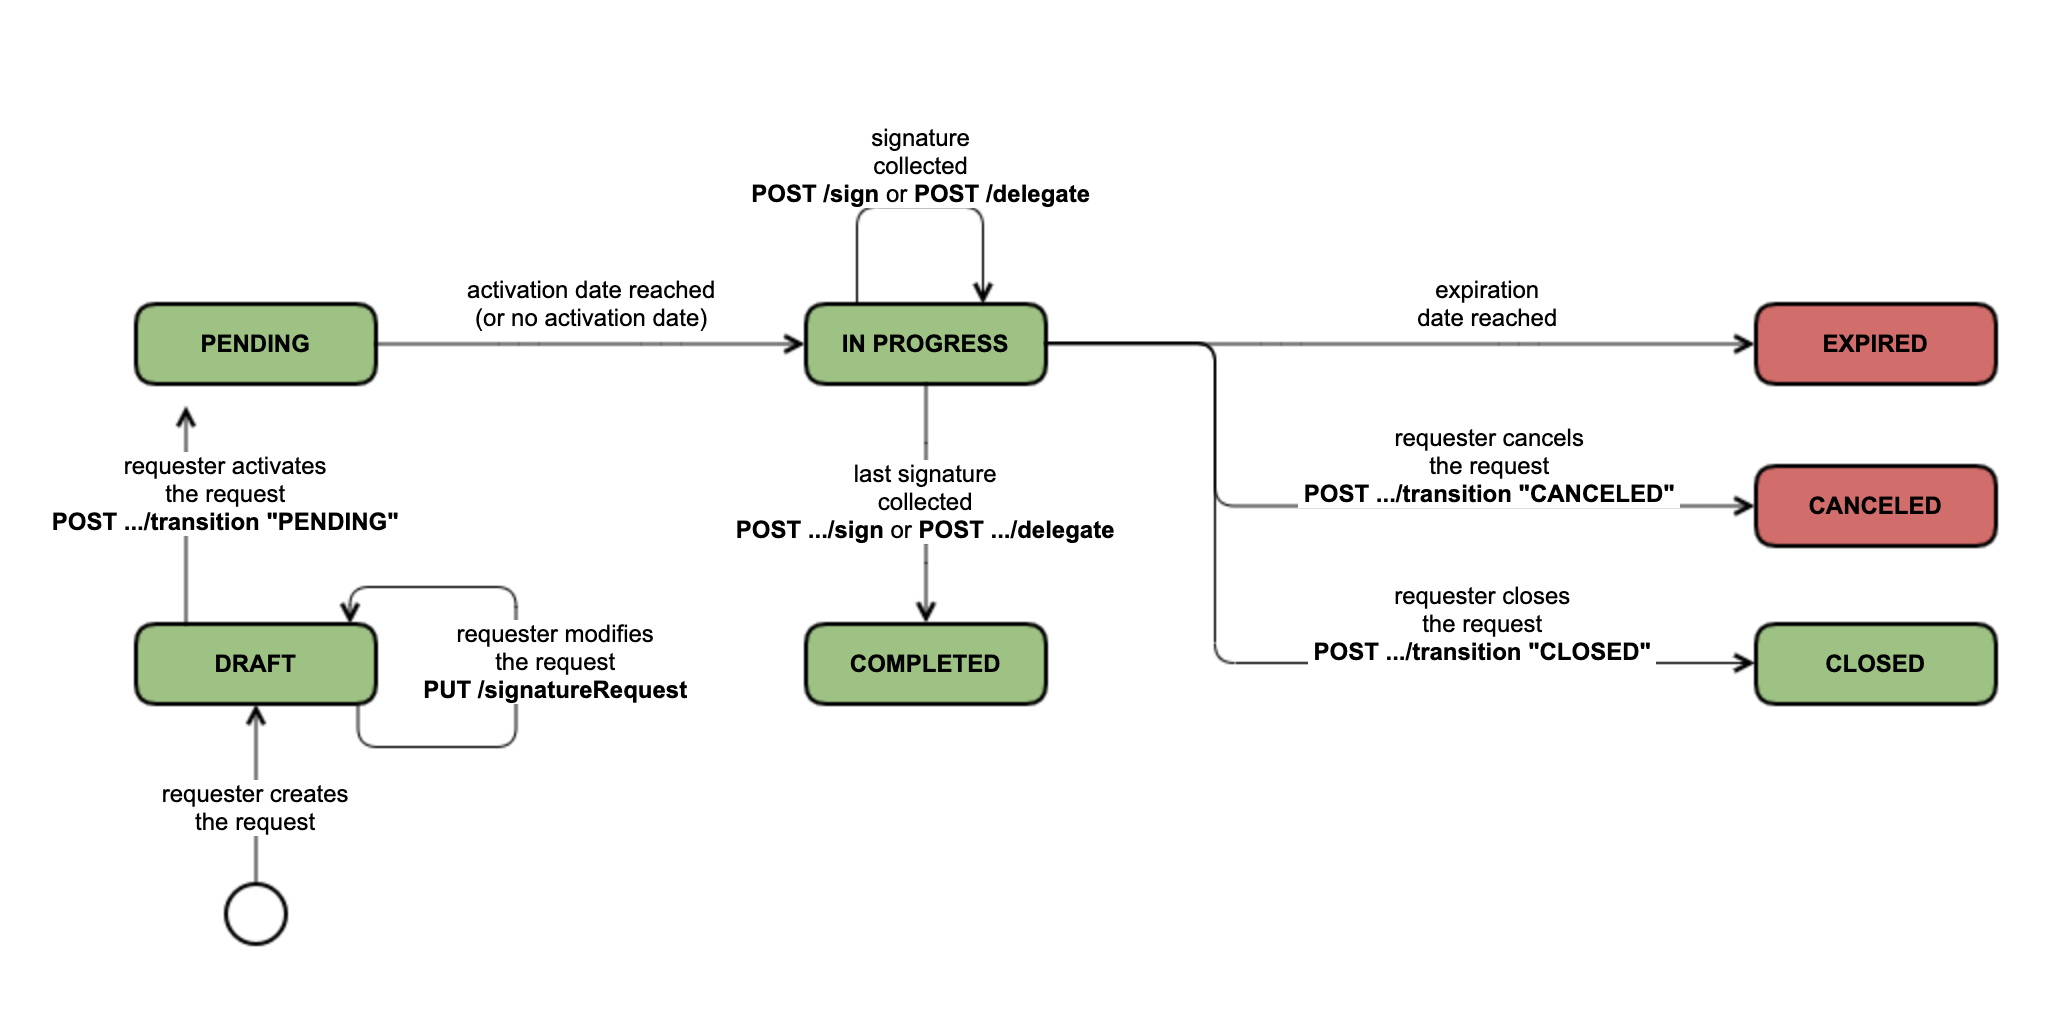 Stateful signature request life cycle